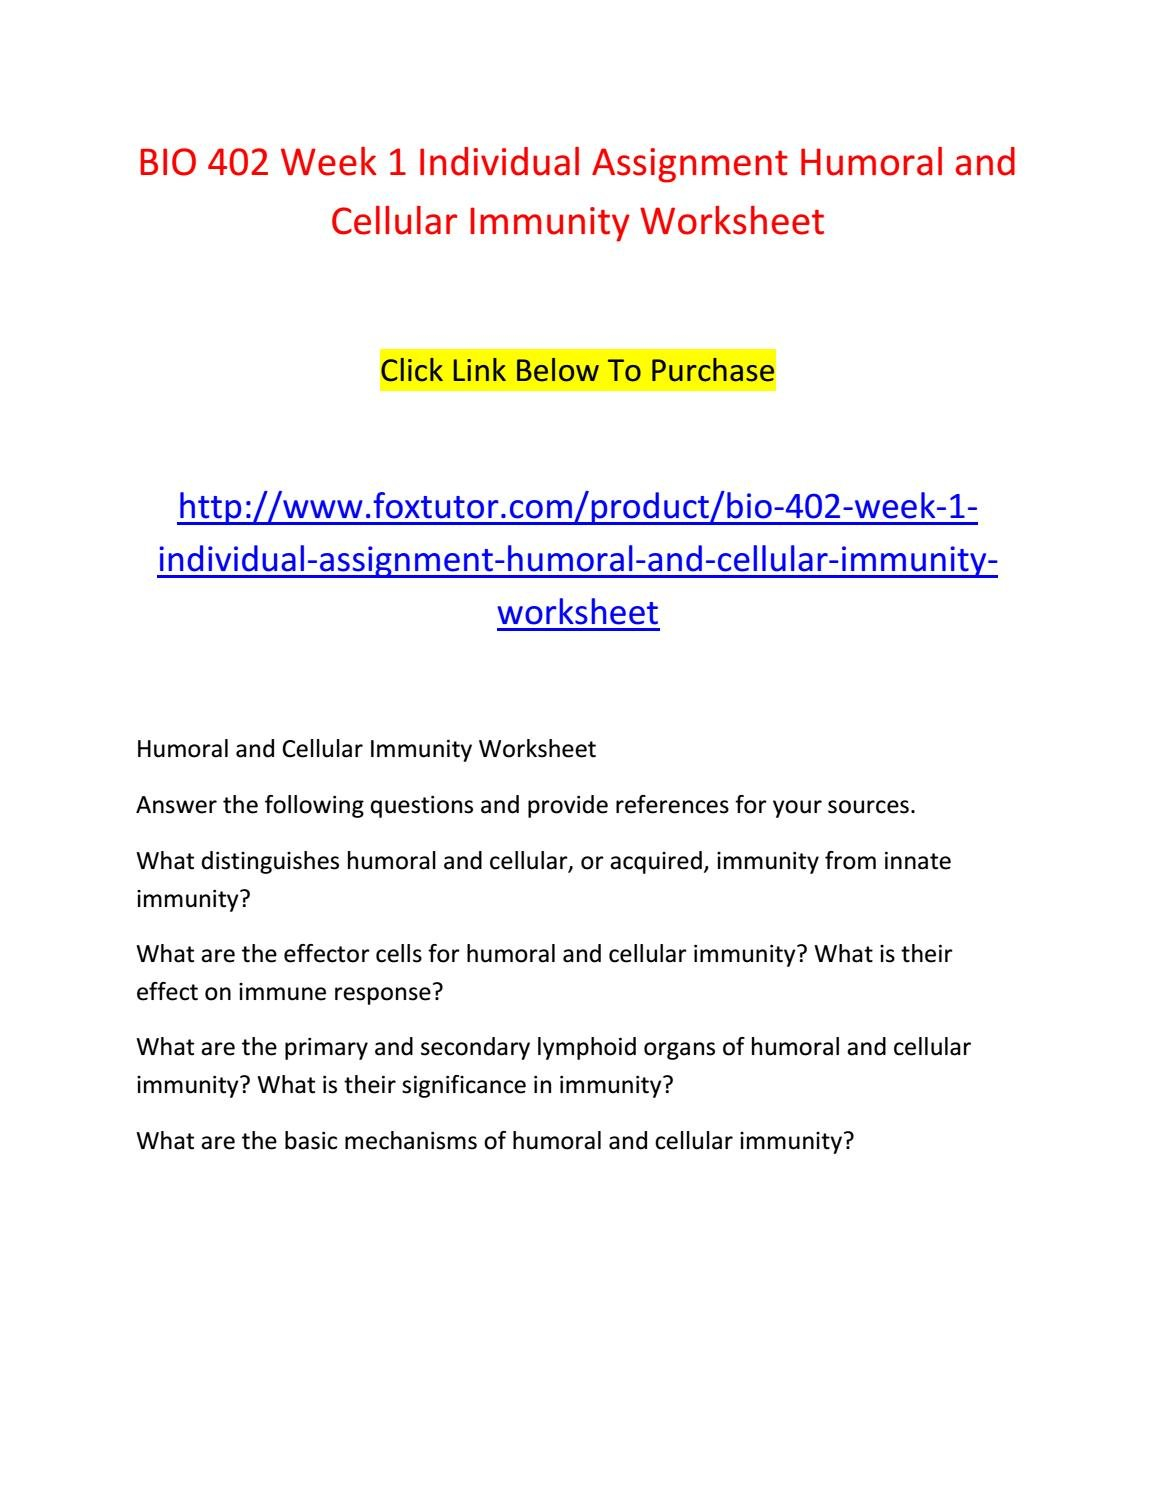 Bio 402 Week 1 Individual Assignment Humoral And Cellular Immunity In Primary And Secondary Immune Response Worksheet Answers